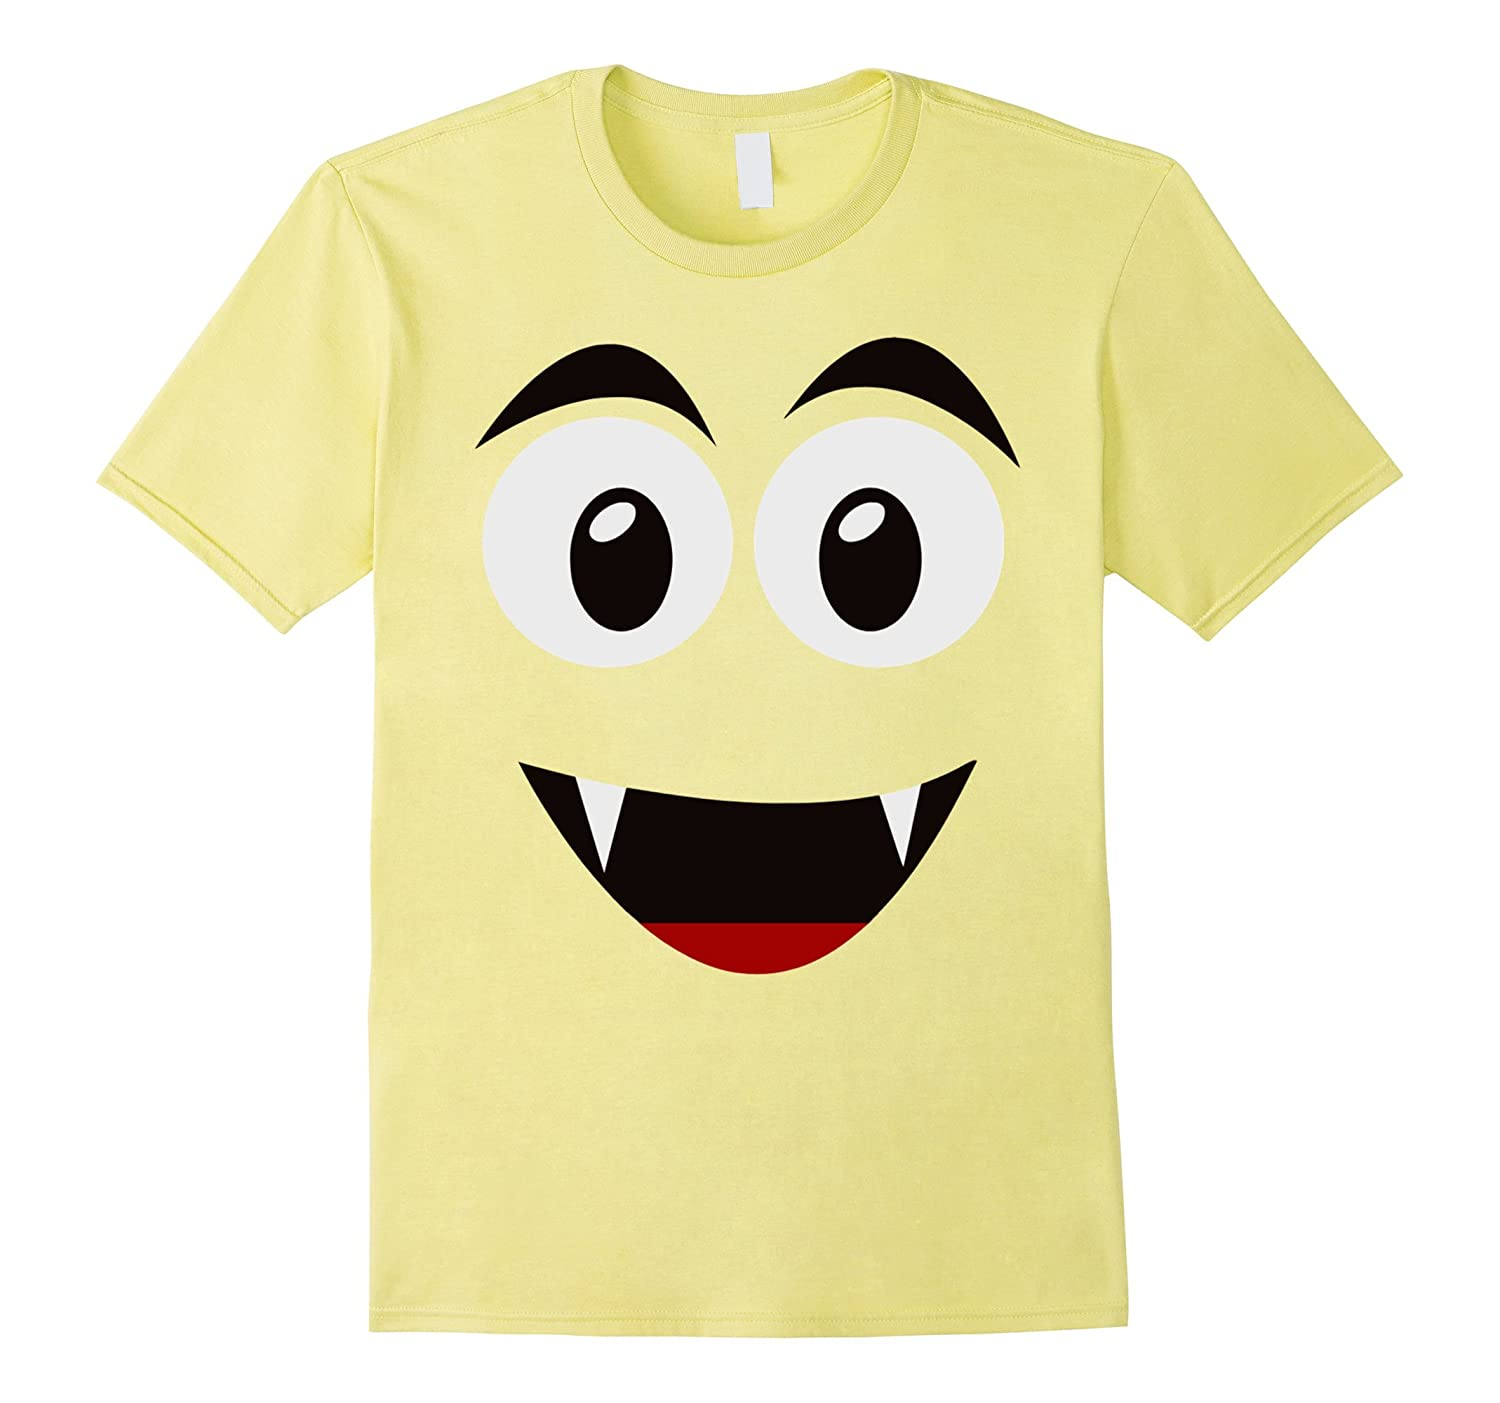 524dbee0 Emoji Smiling Ghost Shirt Yellow Face Funny Costume Gift-T-Shirt ...